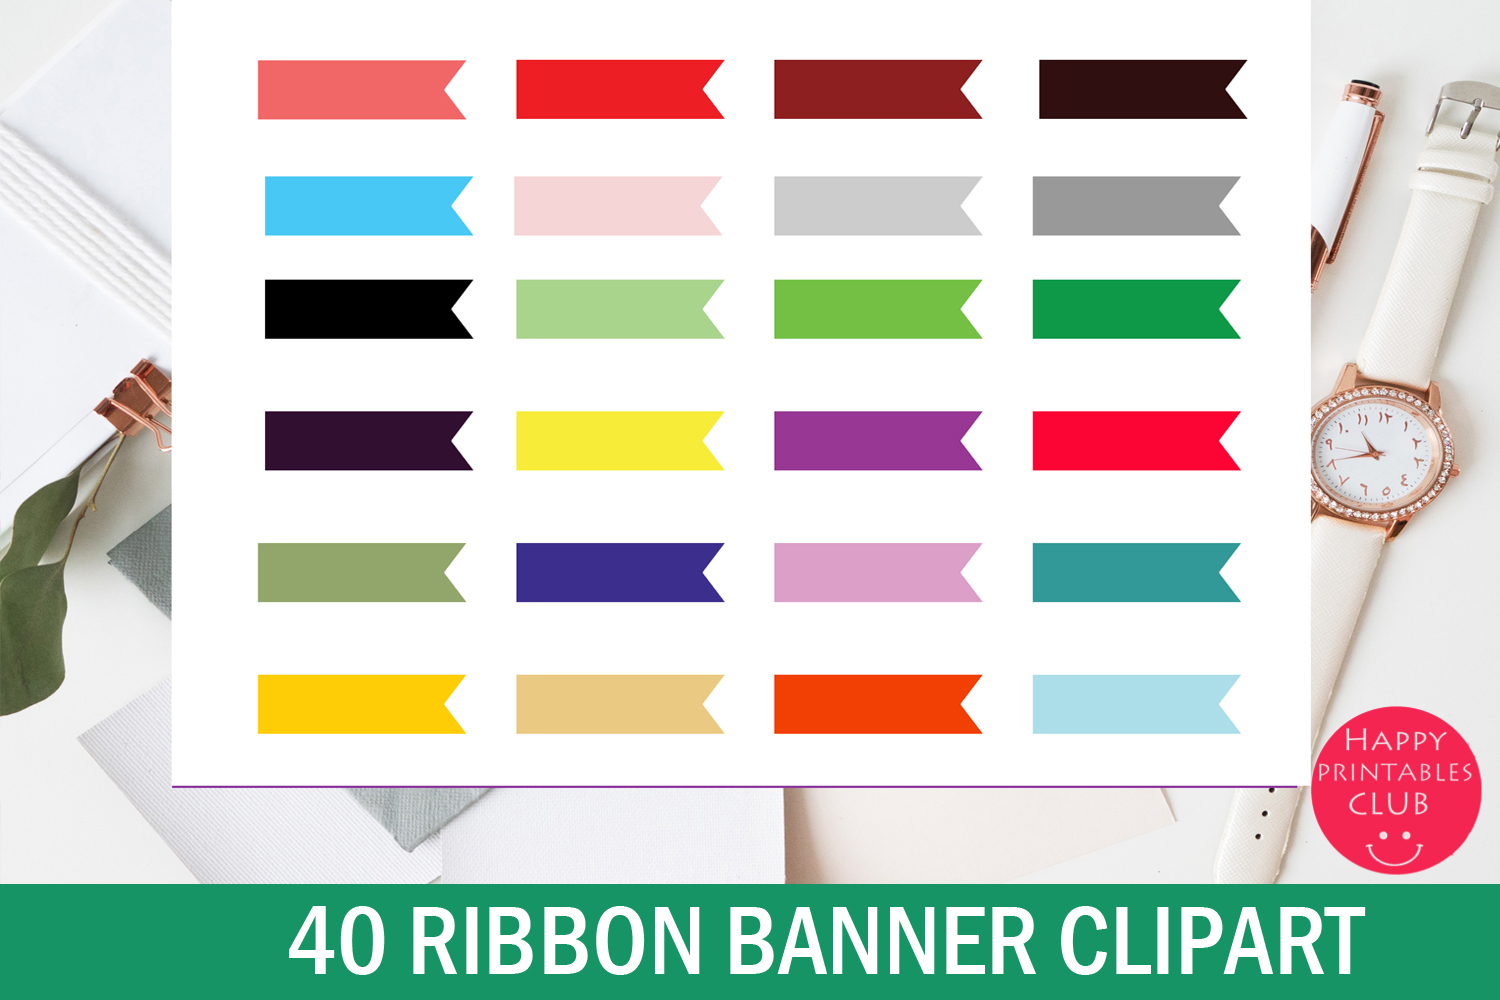 40 Ribbon Banner Clipart - Digital Banner Graphic Set example image 1